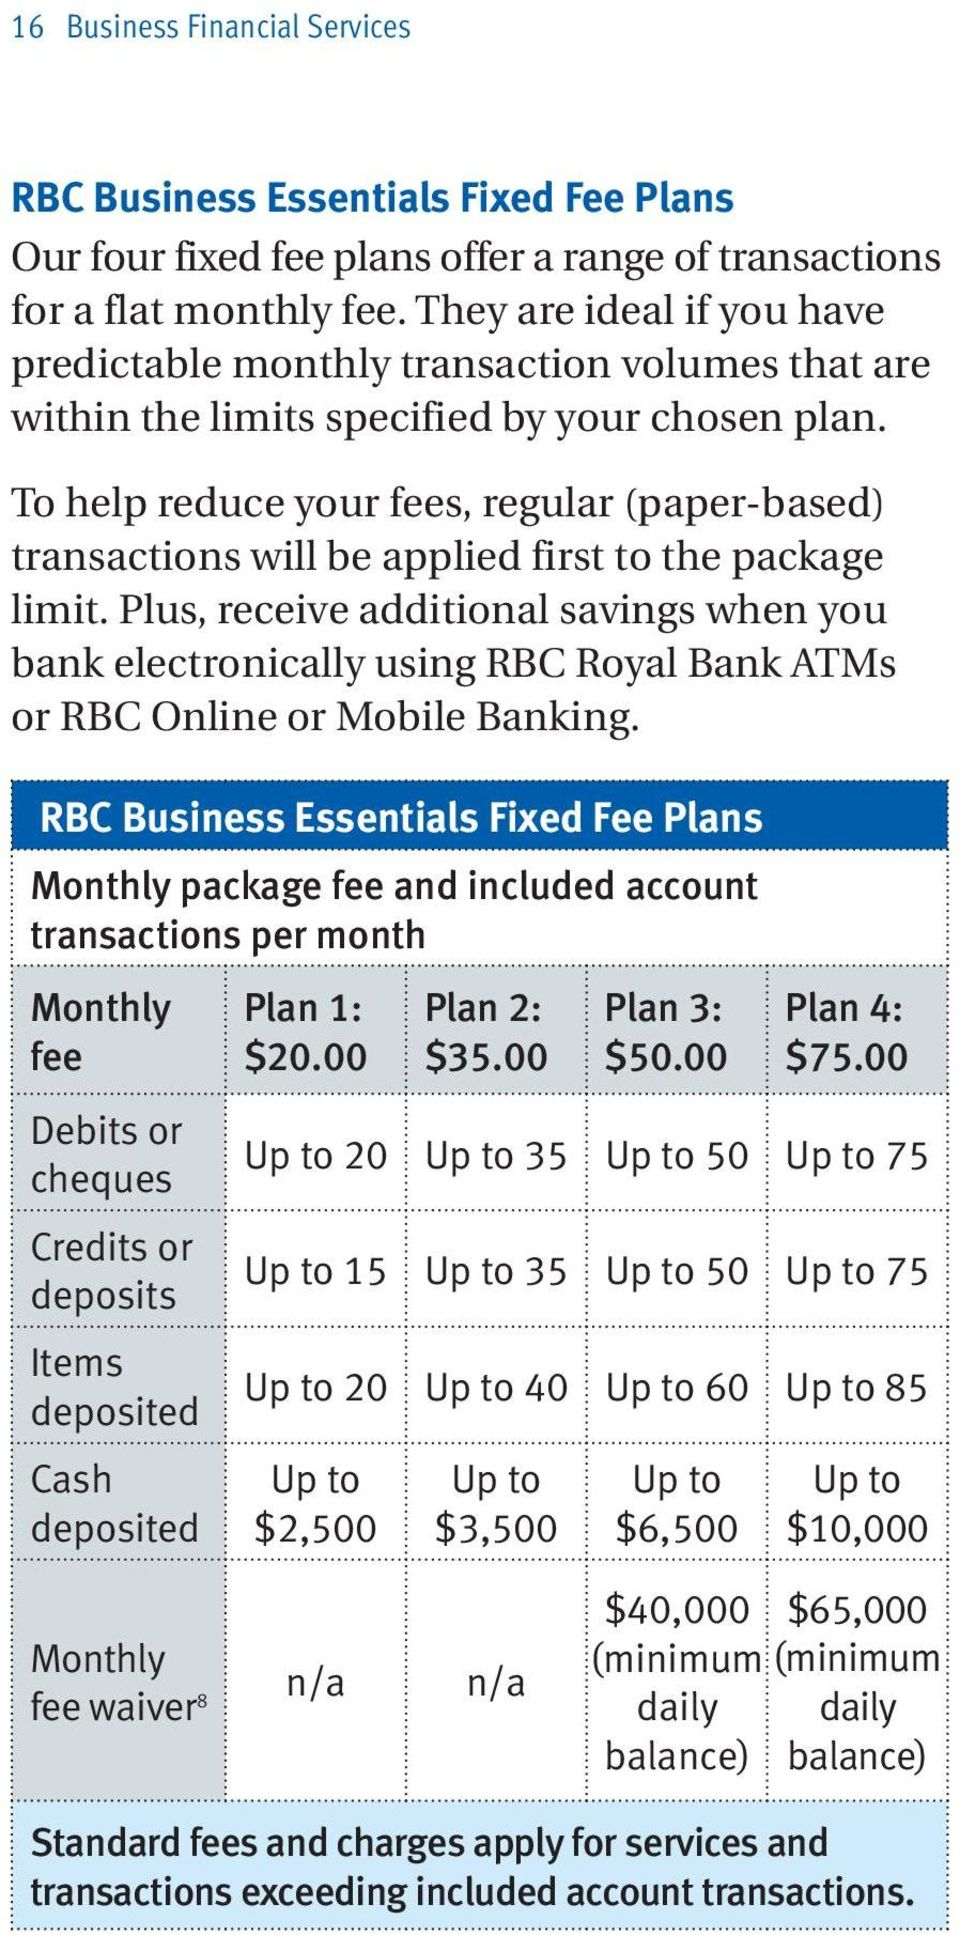 To help reduce your fees, regular (paper-based) transactions will be applied first to the package limit.